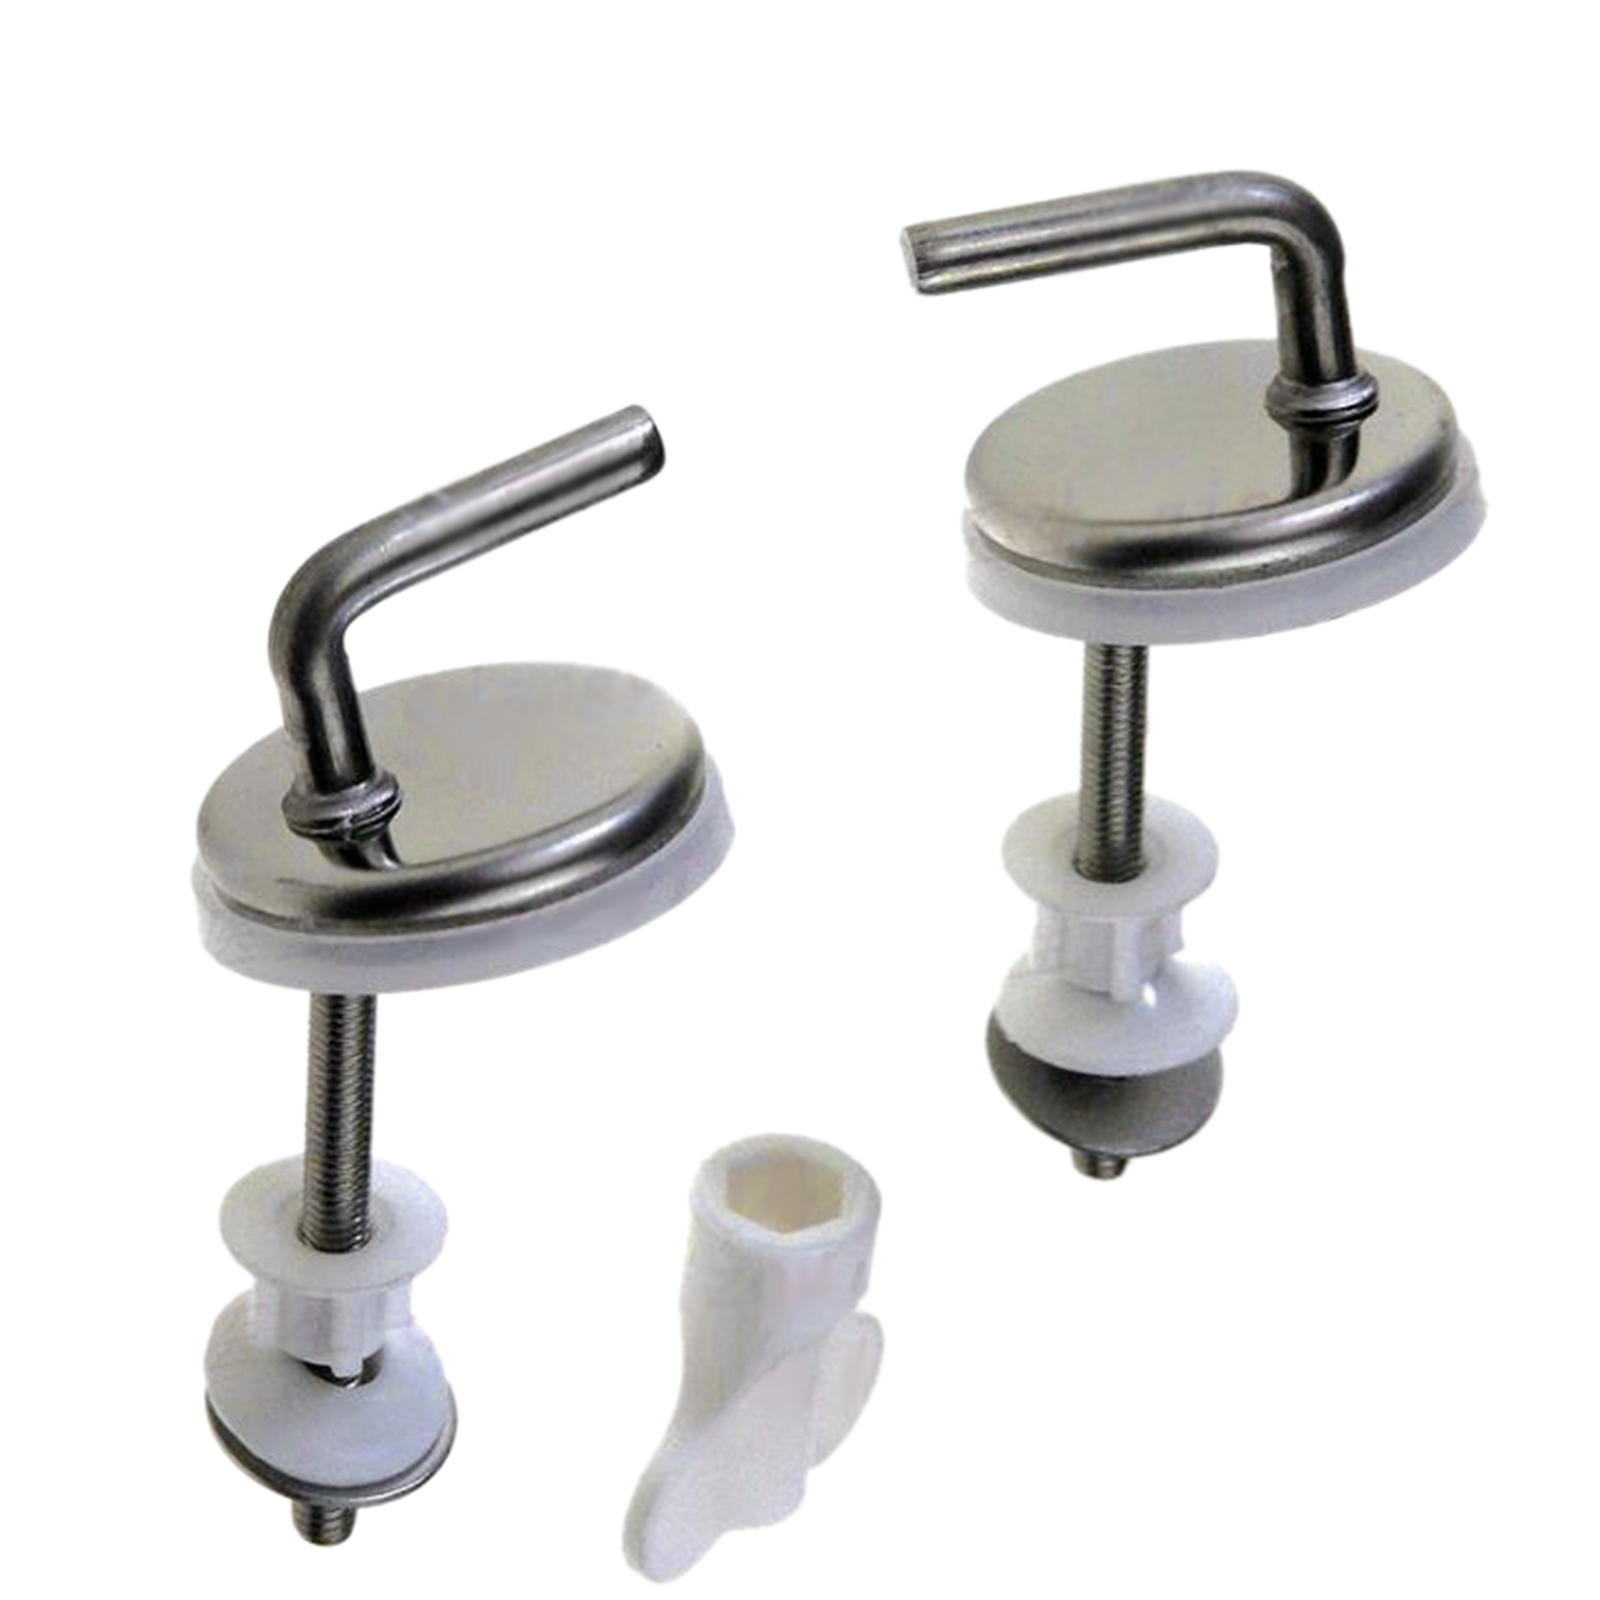 Sensational Details About 2X Toilet Seat Fix Fitting Stainless Steel Back To Wall Replacement Hinges Hinge Unemploymentrelief Wooden Chair Designs For Living Room Unemploymentrelieforg